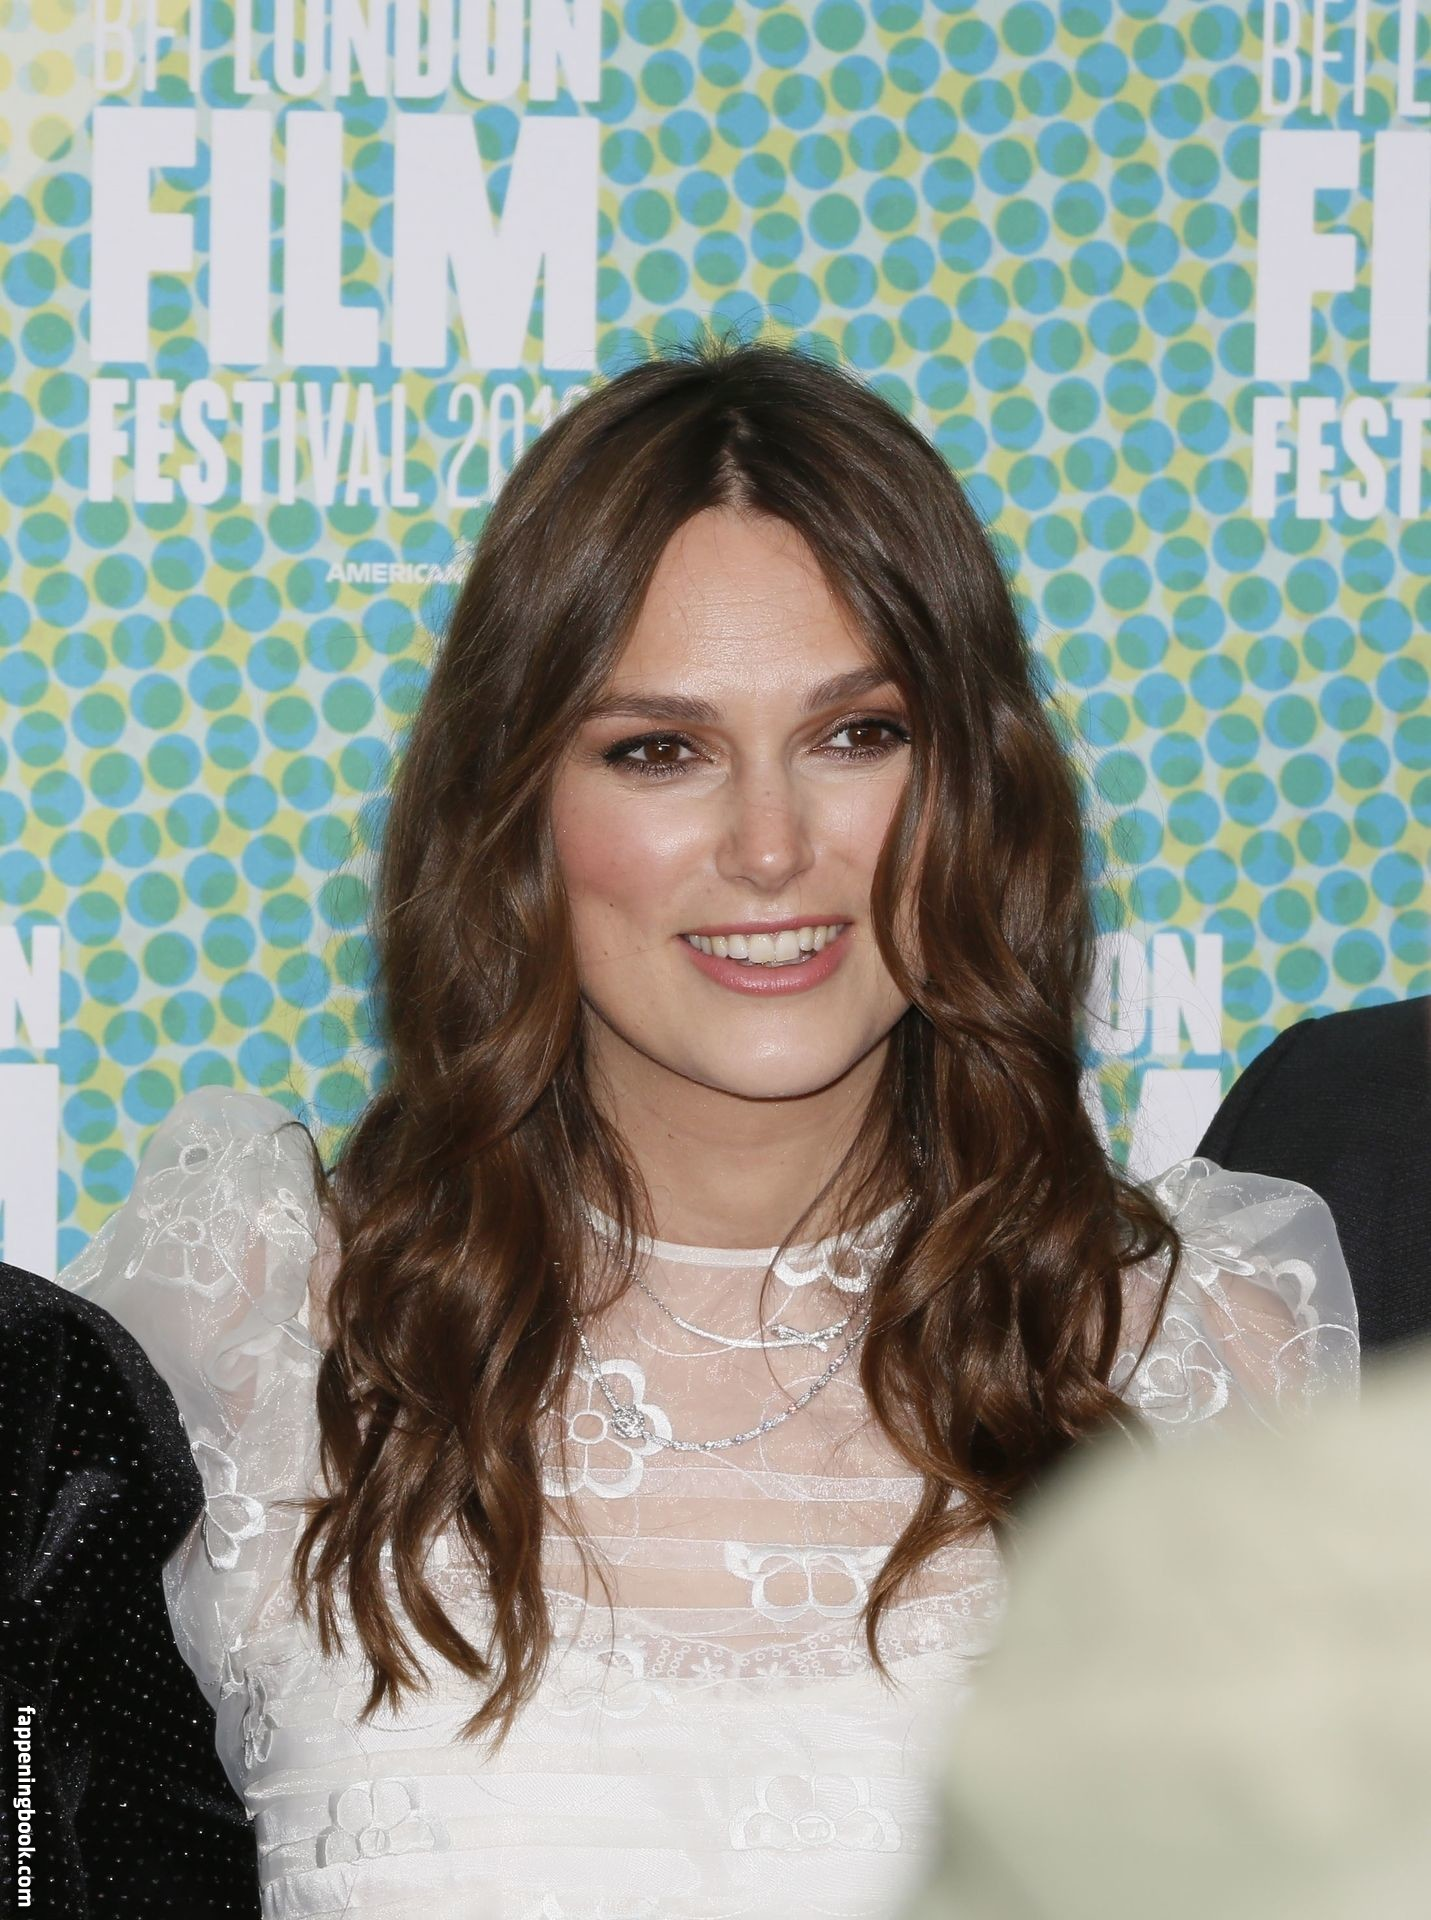 Keira Knightley Sexy - The Fappening Leaked Photos 2015-2021